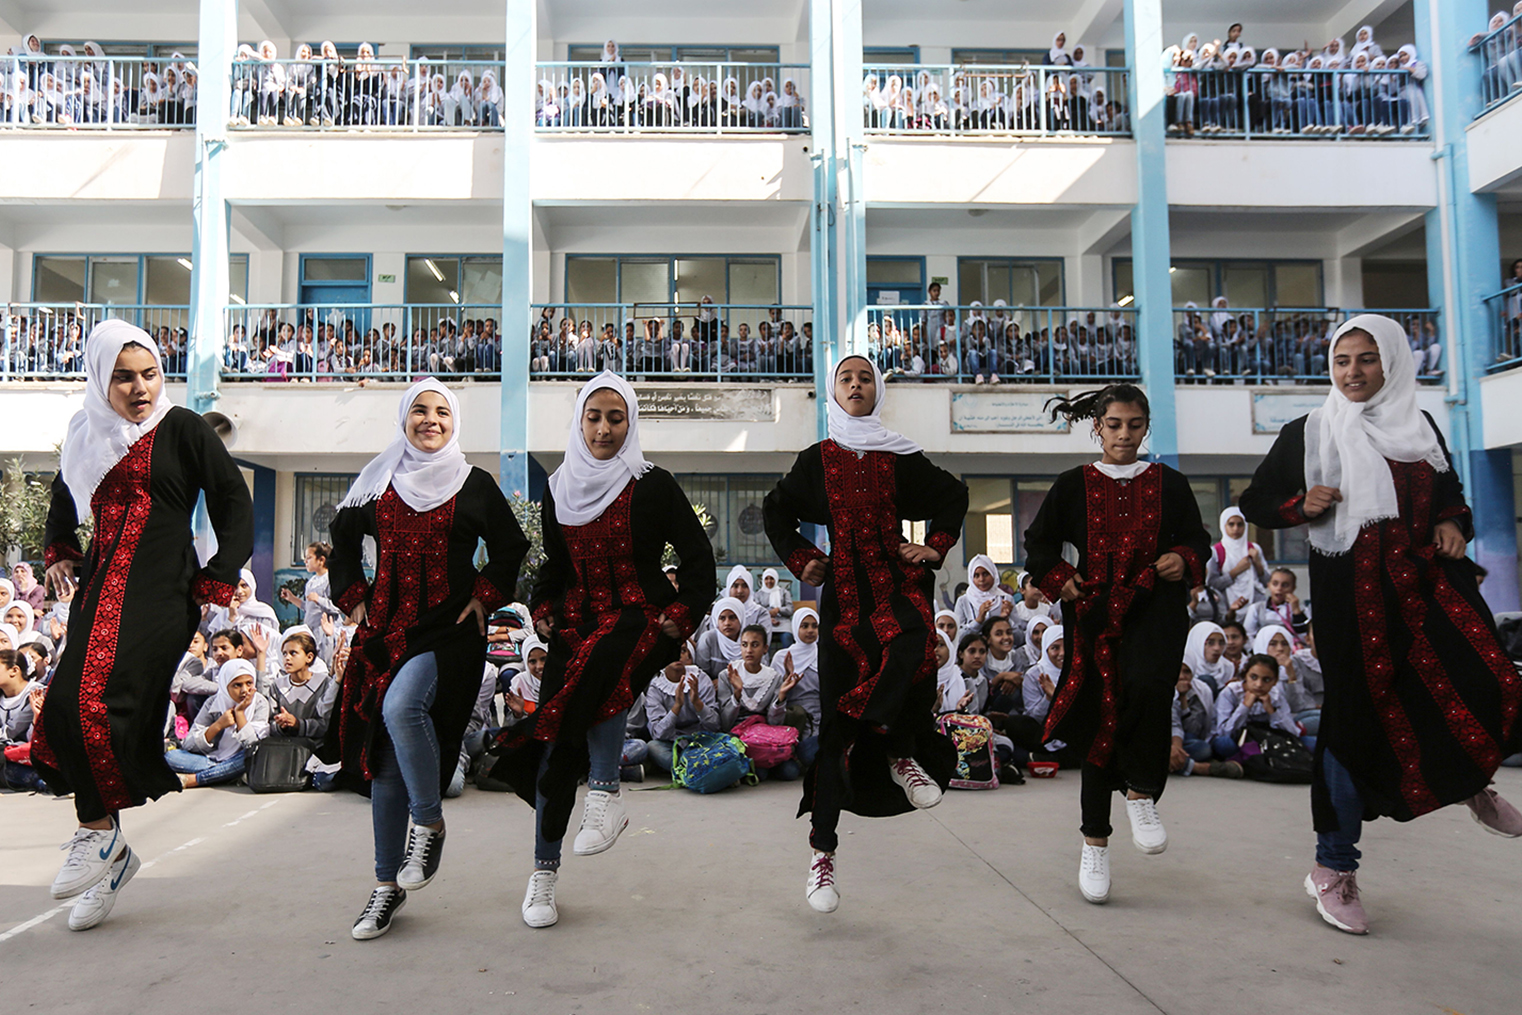 Palestinian schoolgirls in national dress take part in a traditional dance as musicians from the Edward Said National Conservatory of Music perform at a United Nations Relief and Works Agency school in Beit Hanoun, in the Southern Gaza Strip, on Sept. 26. MAHMUD HAMS/AFP/Getty Images